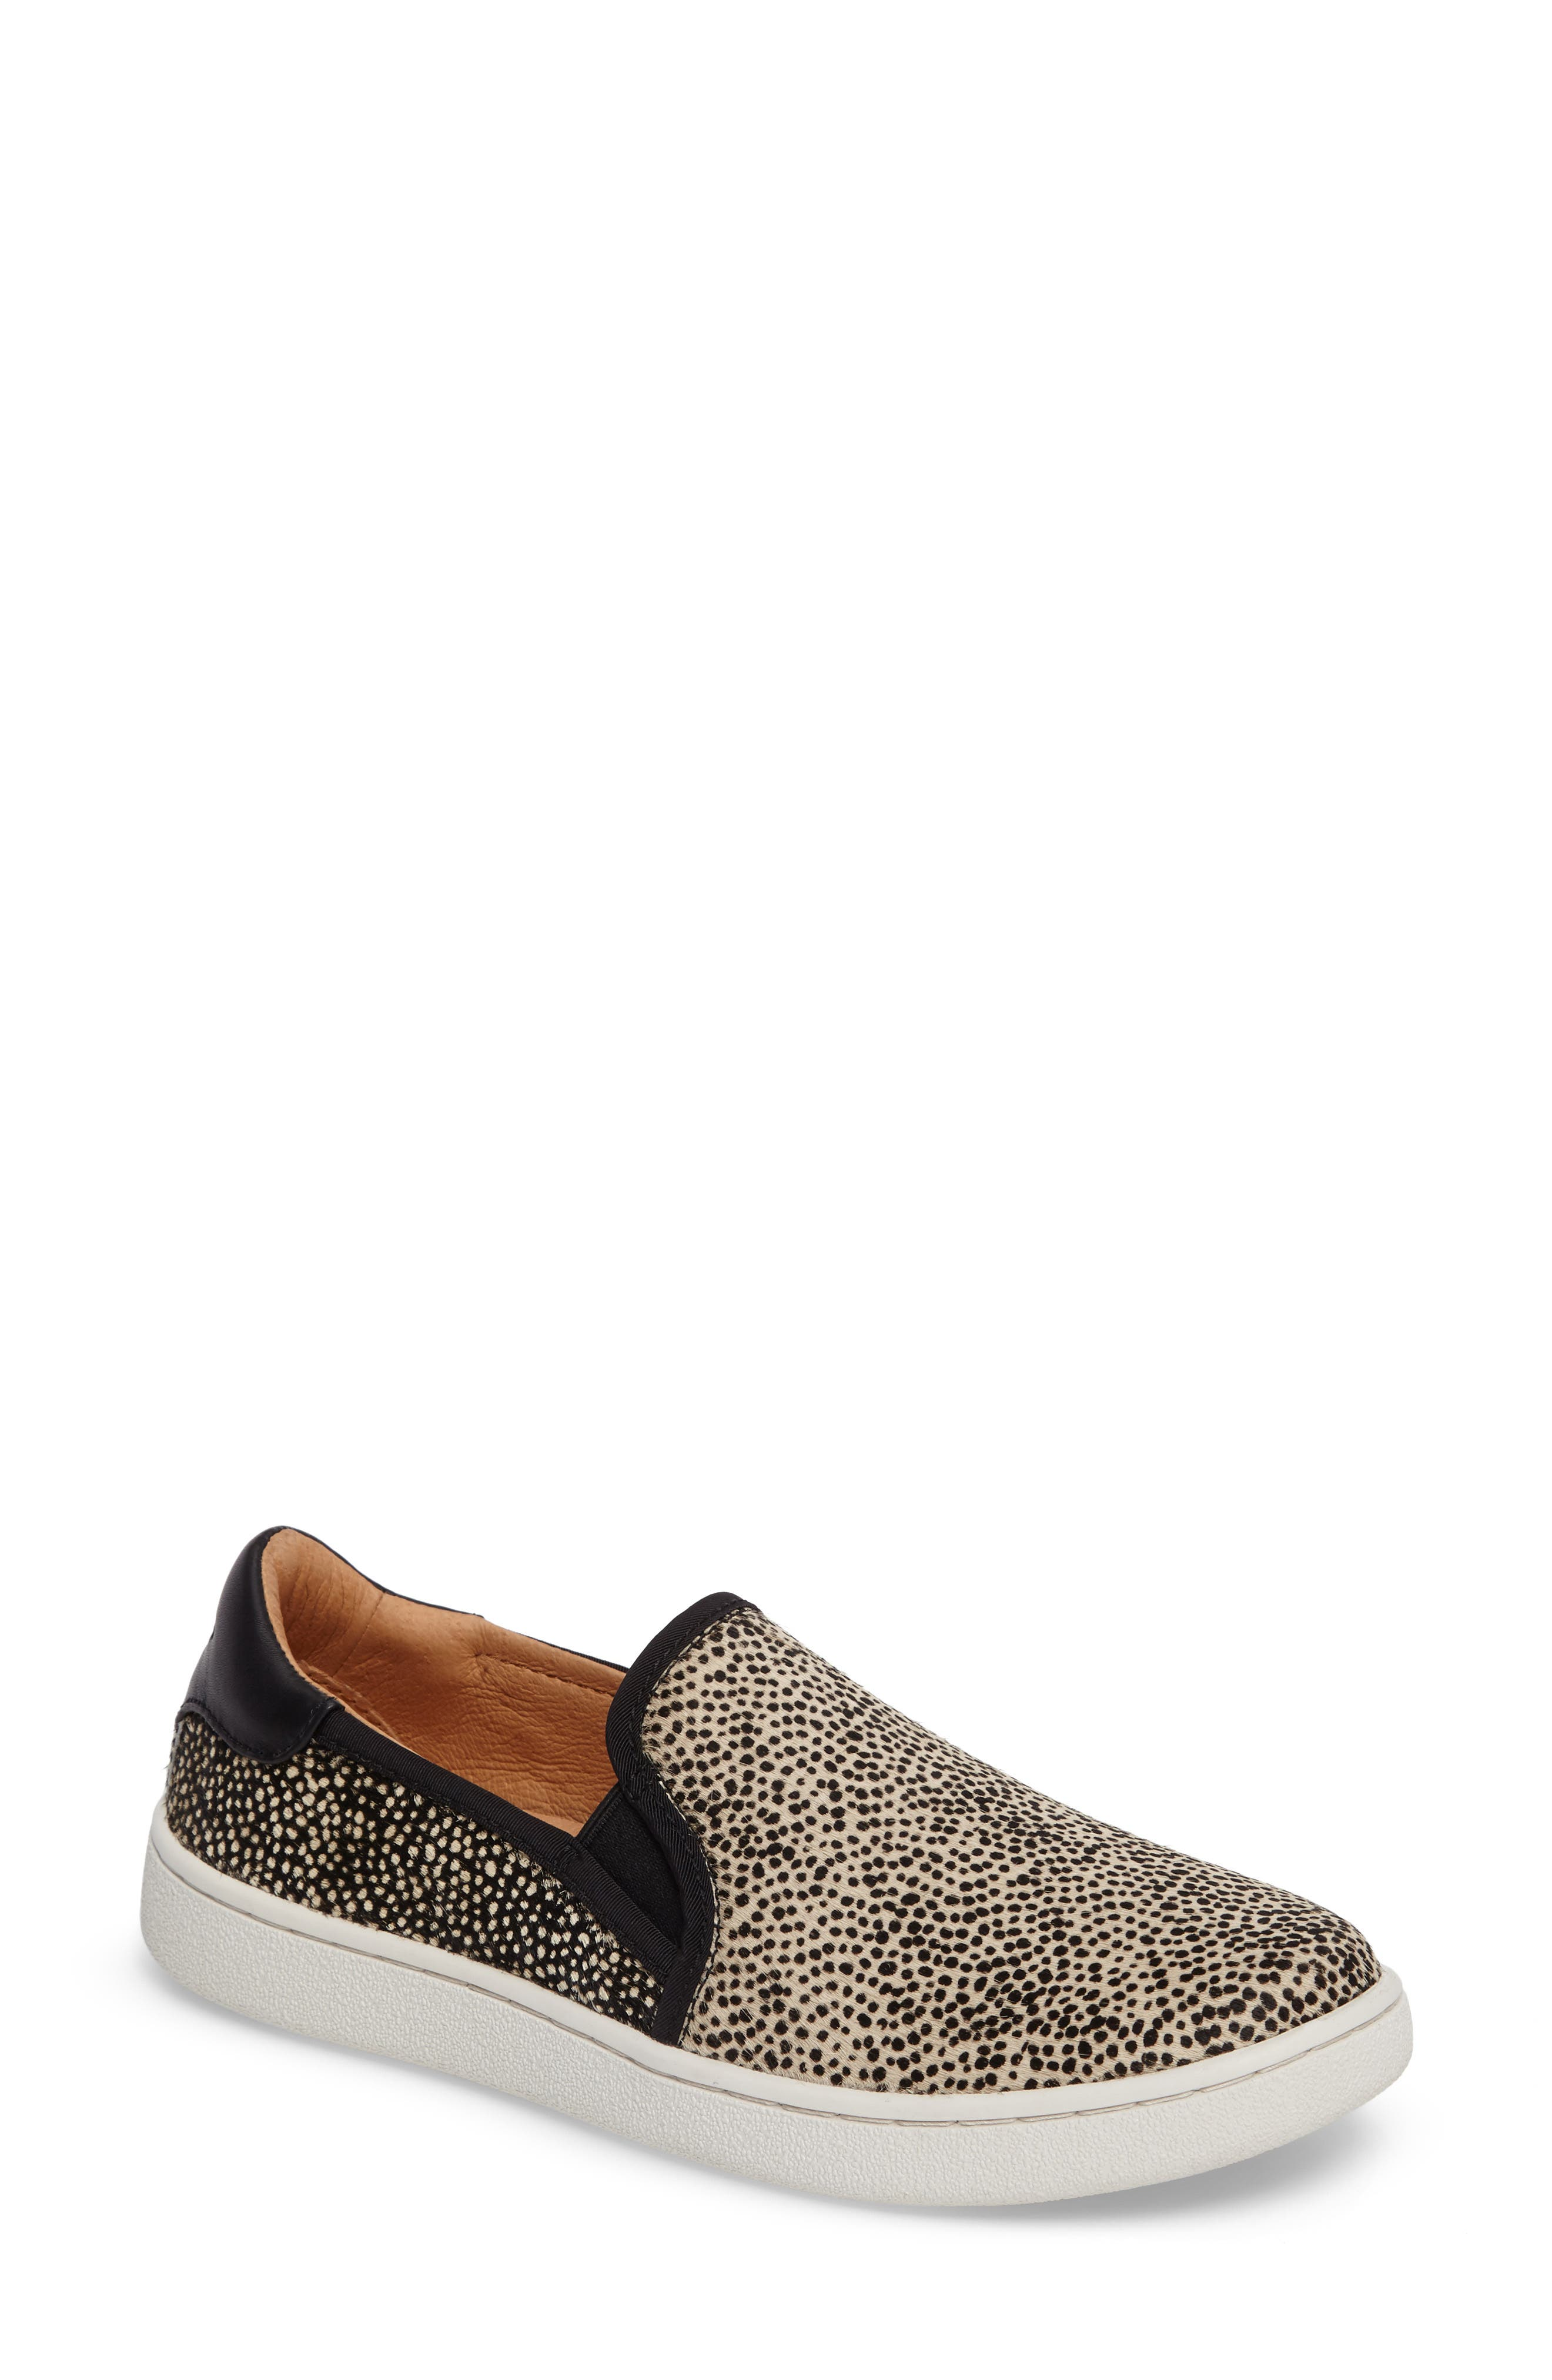 Cas Exotic Genuine Calf Hair Slip-On Sneaker,                         Main,                         color, 200